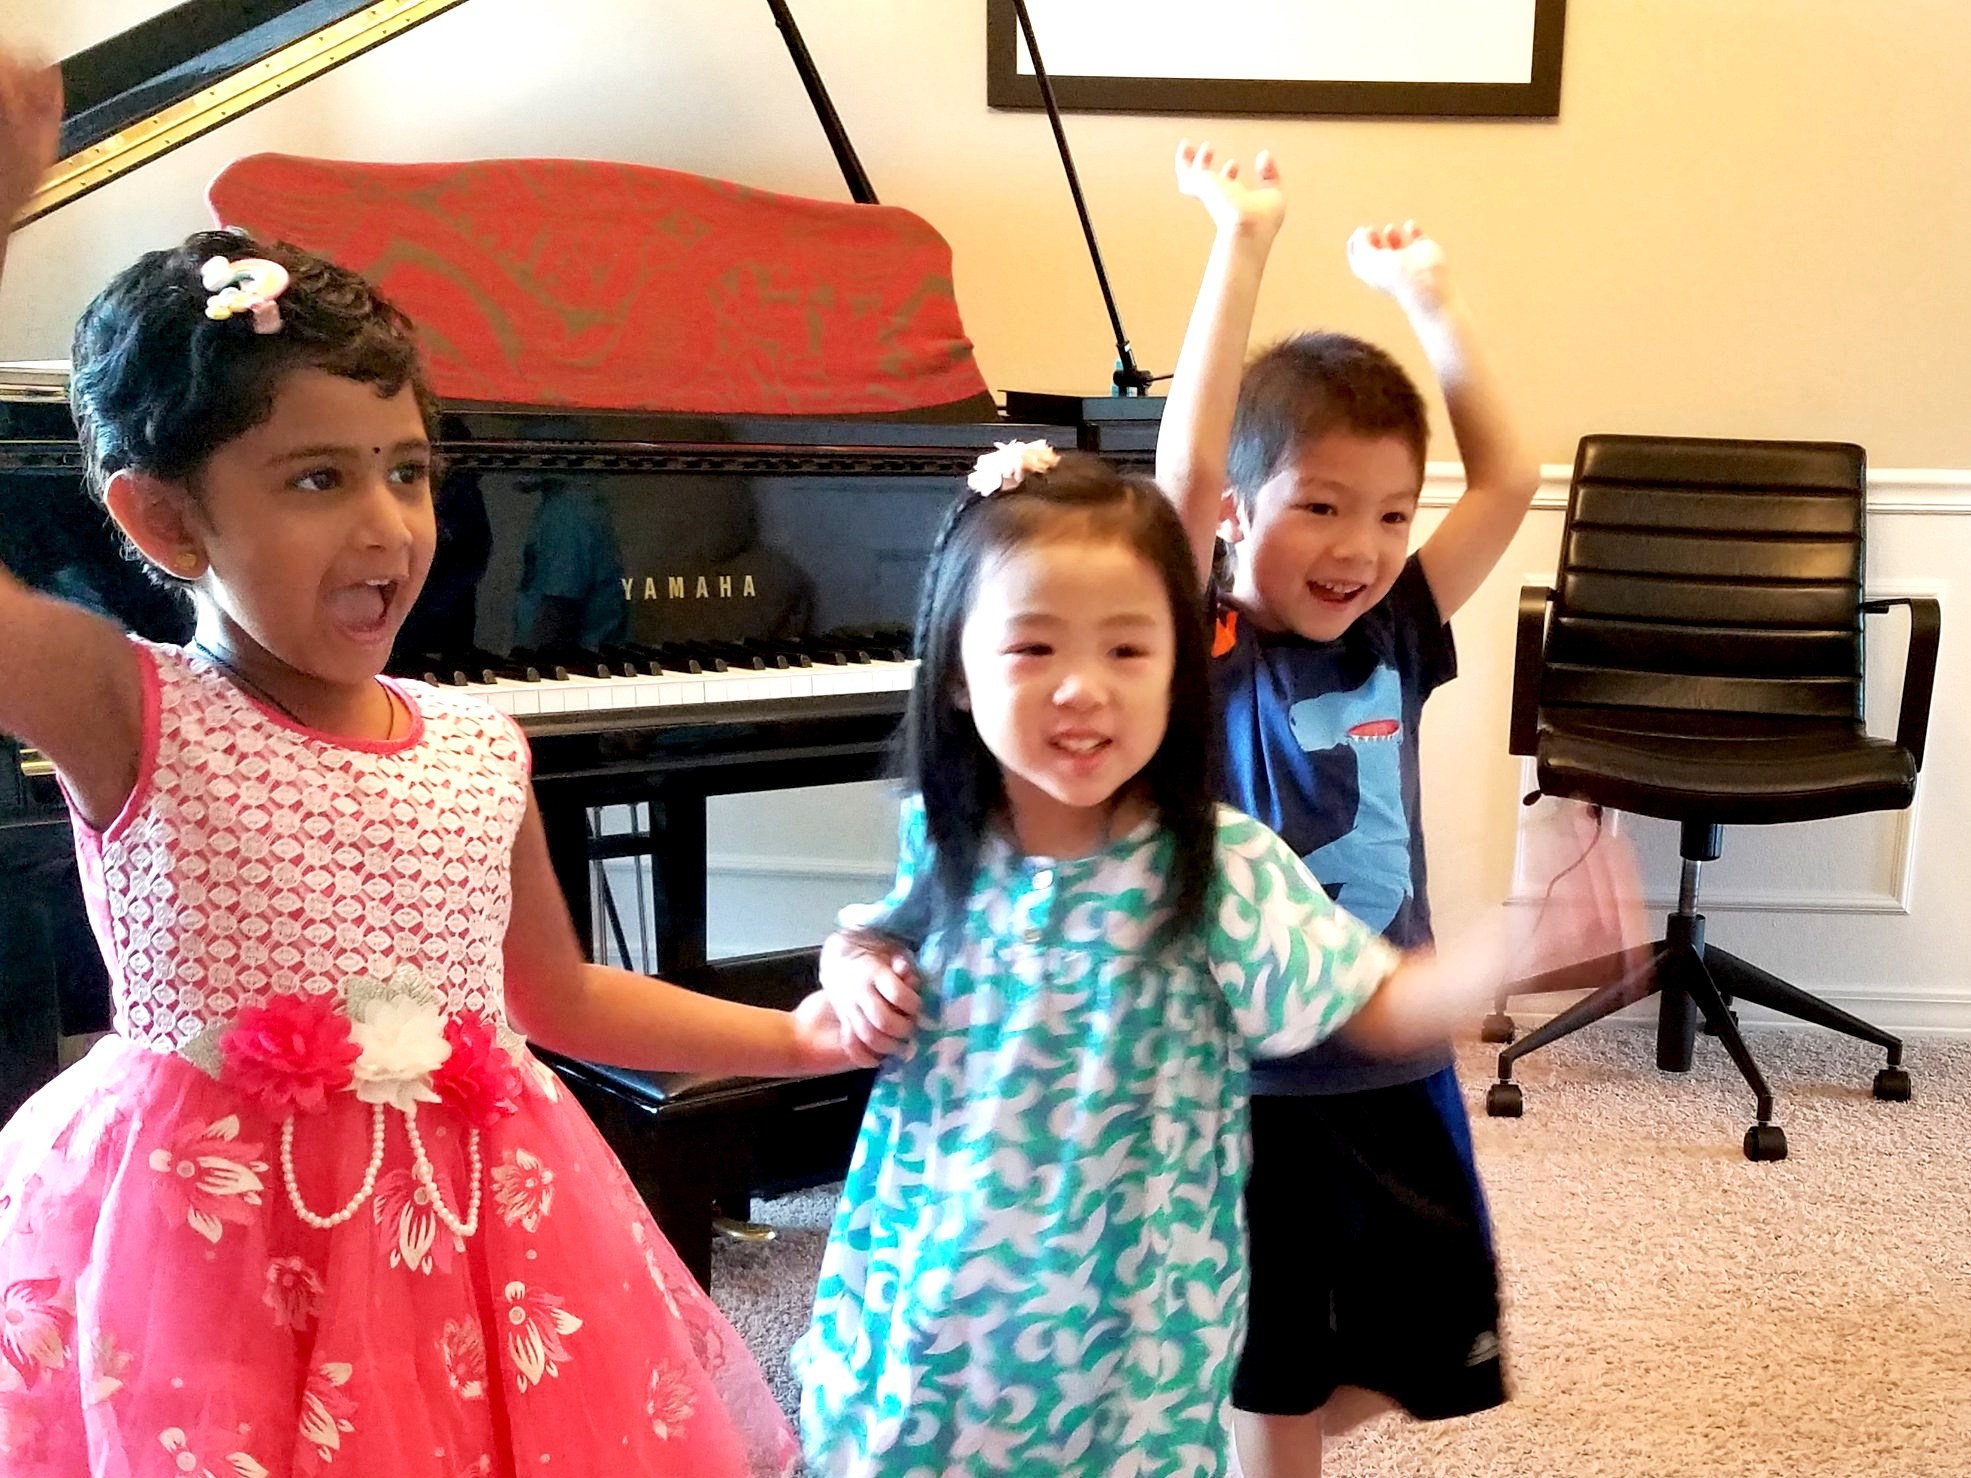 Music & Movement - Join us for fun private and group lessons! Engaging music activities with singing, movement, rhythmic games, performance party and musical story time. Periodical group lessons allow students to broaden their musical experiences. Our little pianists enjoy learning and experiencing teamwork in a friendly and encouraging atmosphere.